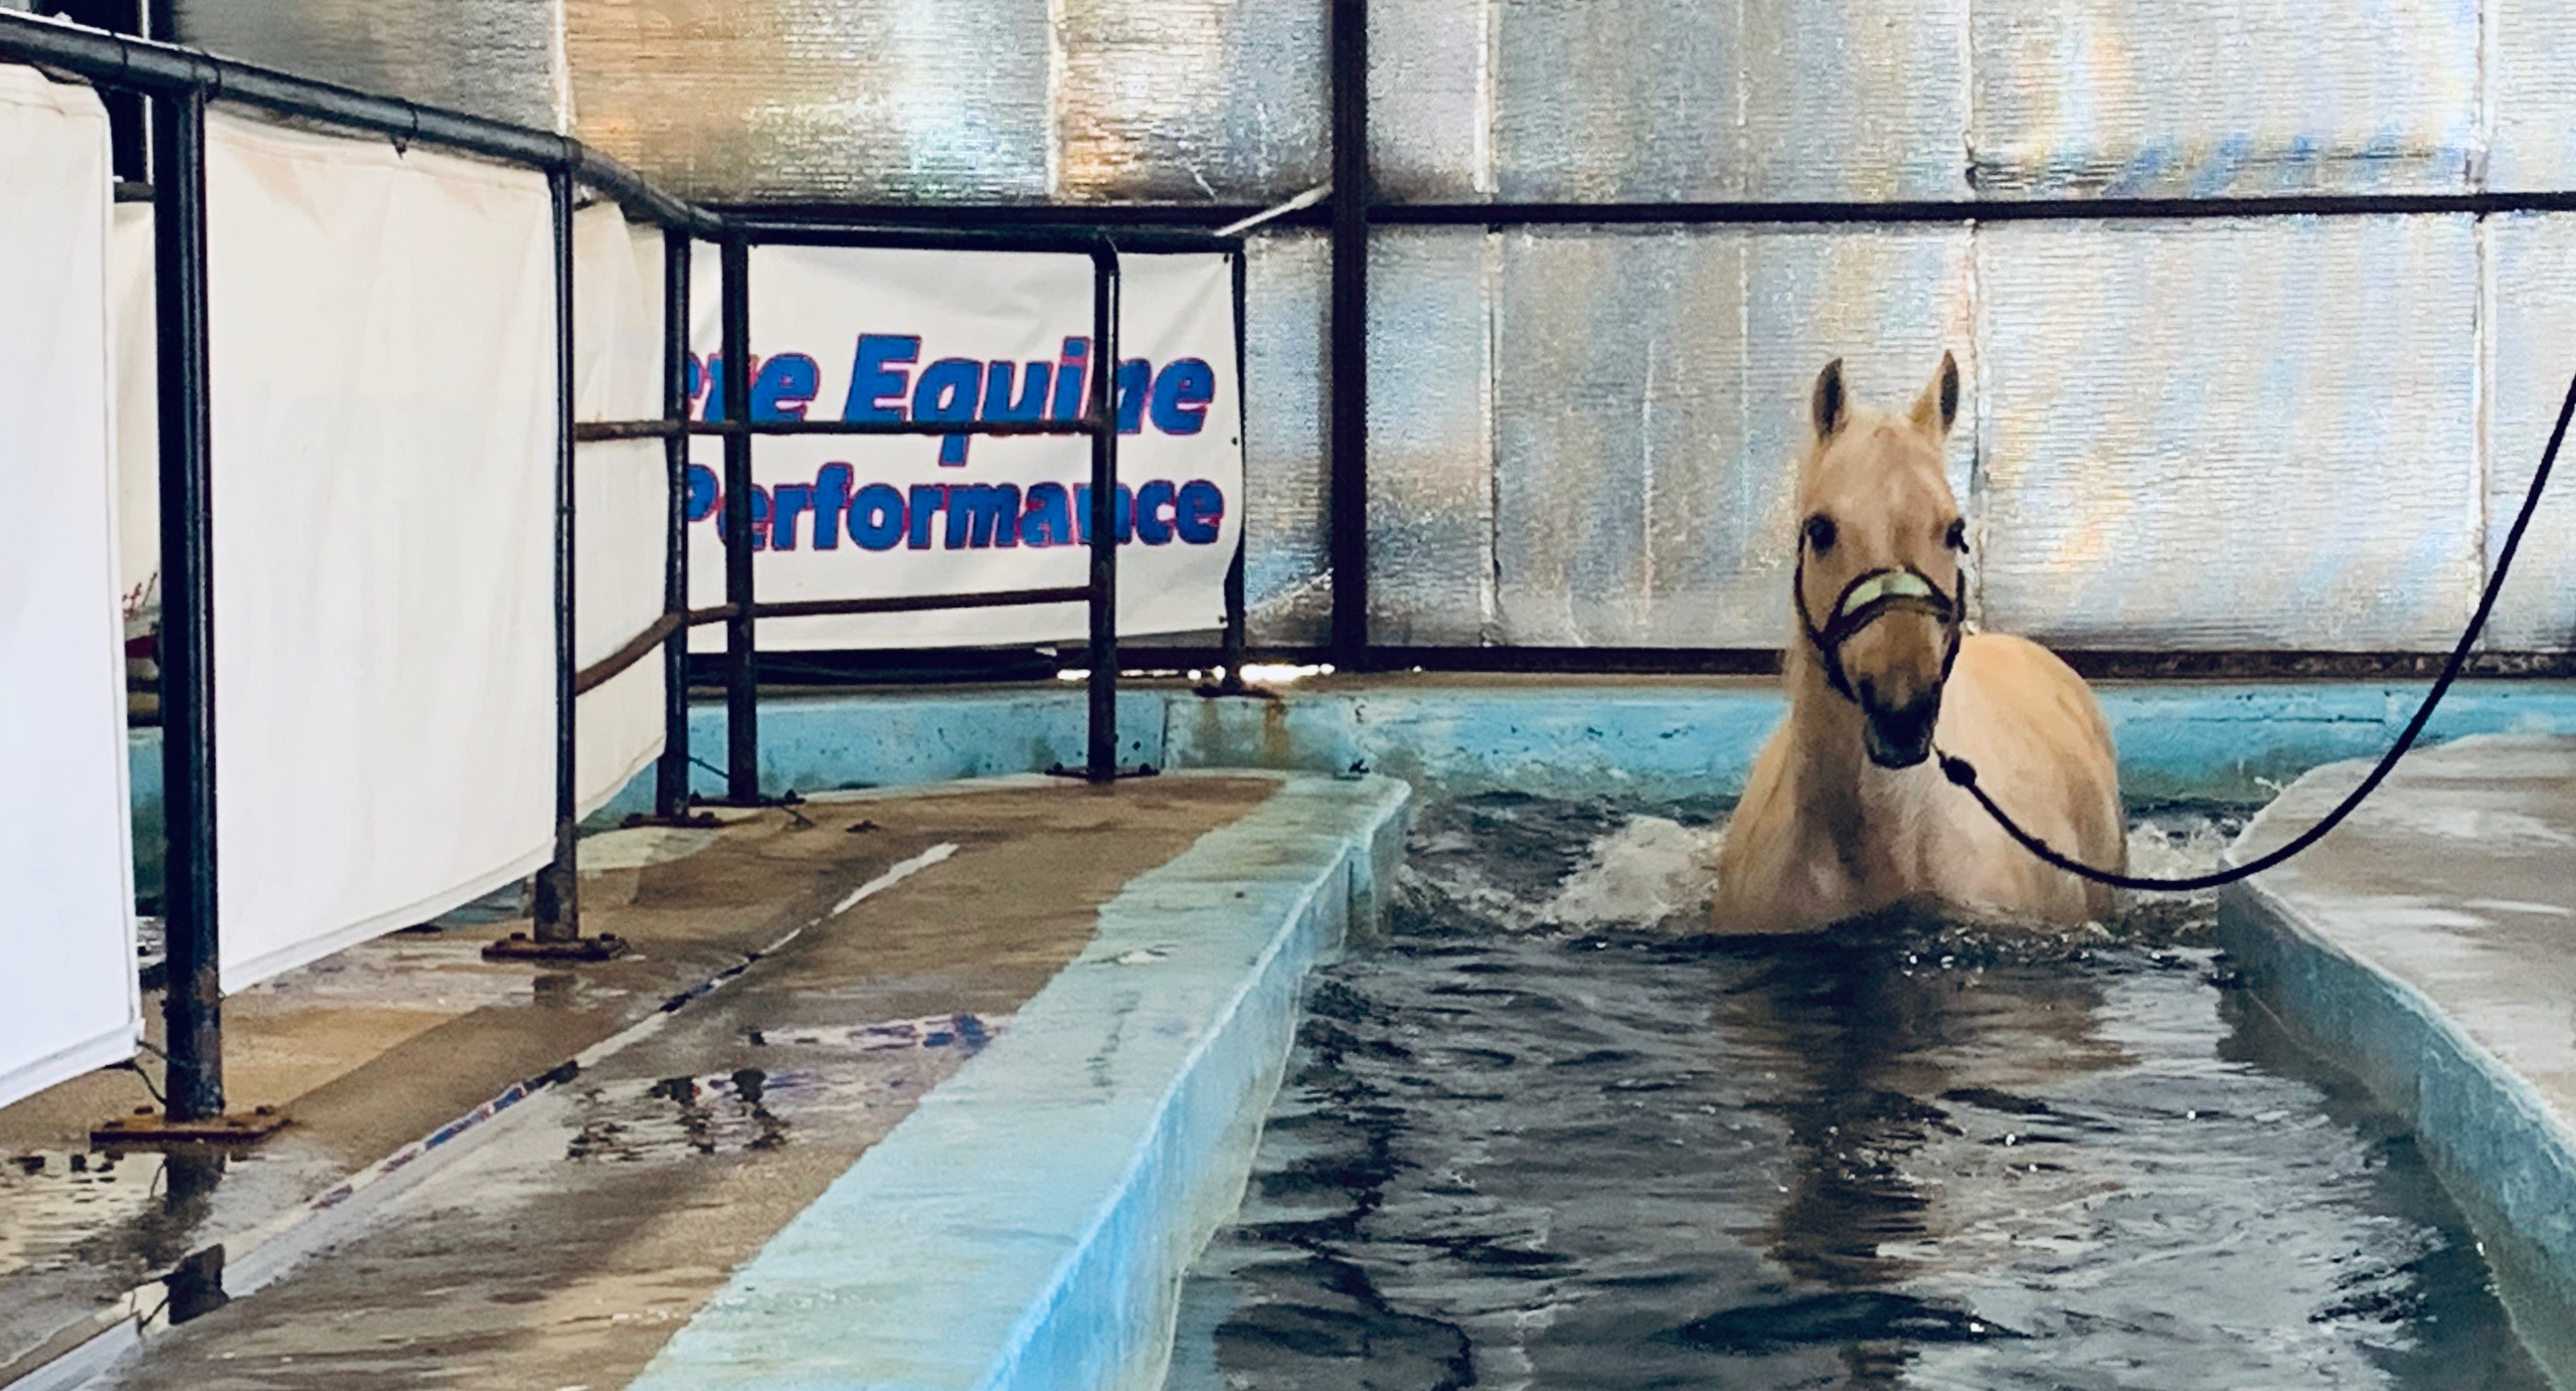 Complete Equine Performance